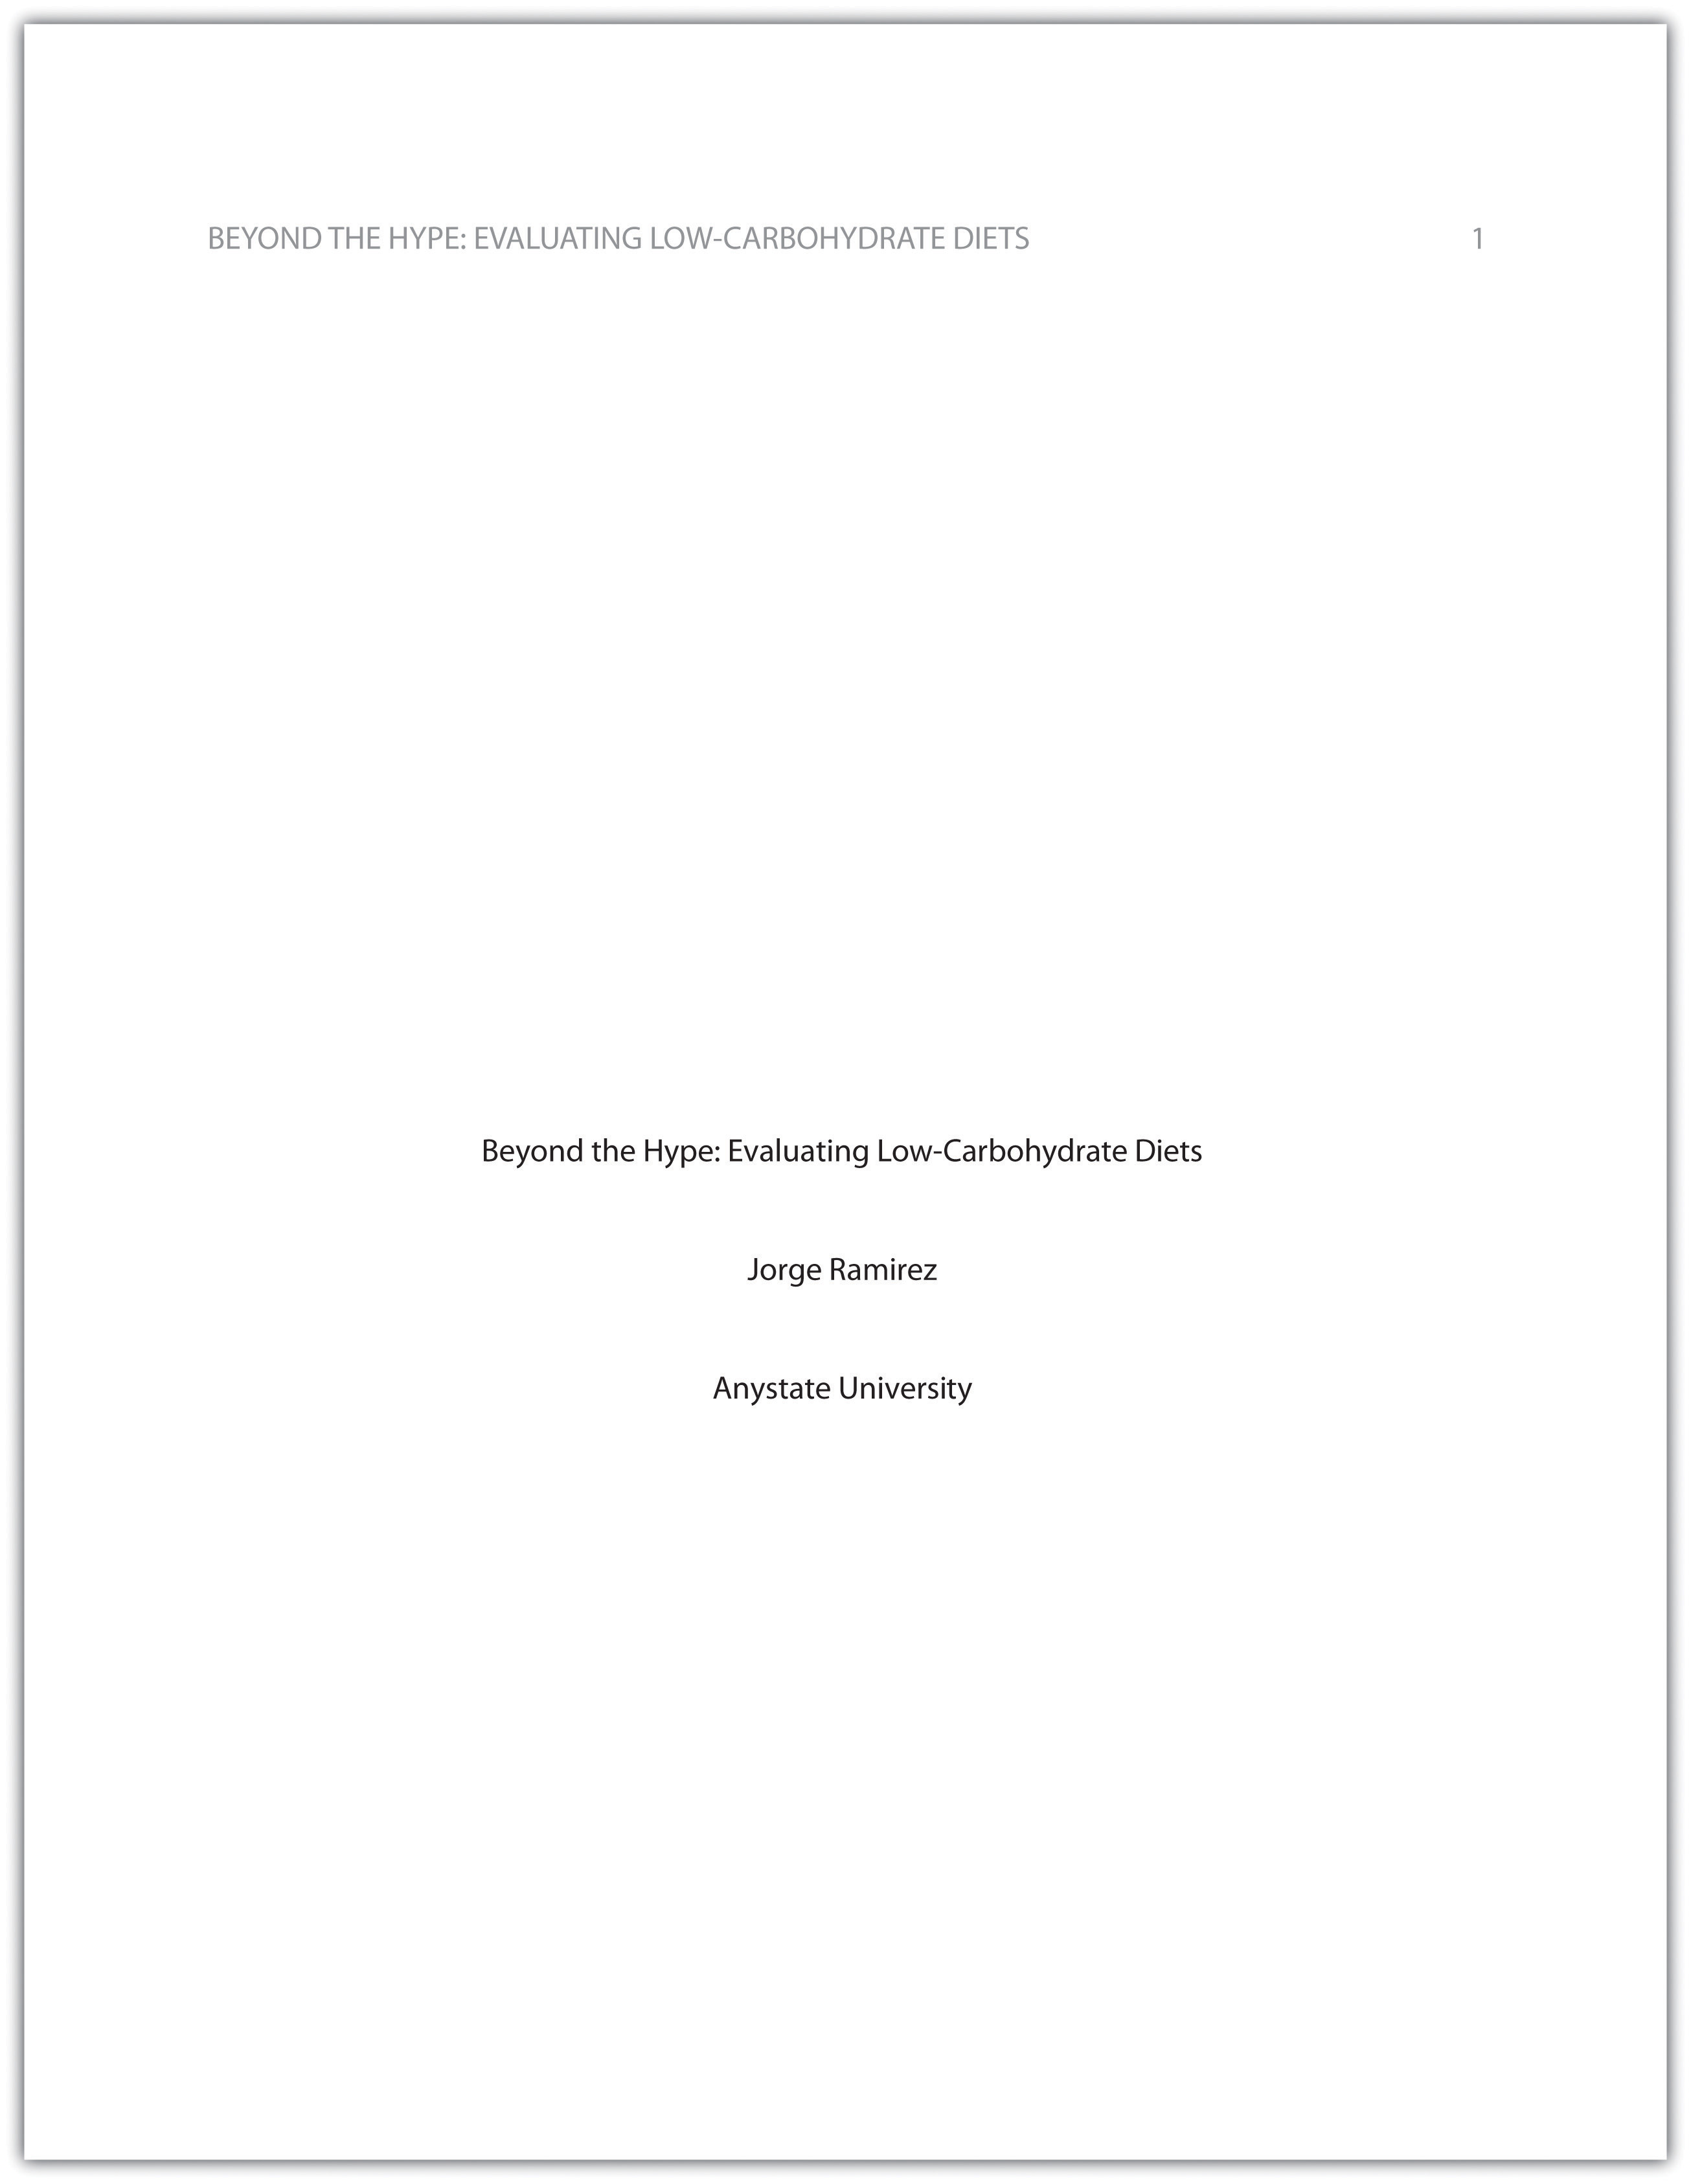 002 Research Paper Cover Page Apa Excellent Layout Format Example Style Full